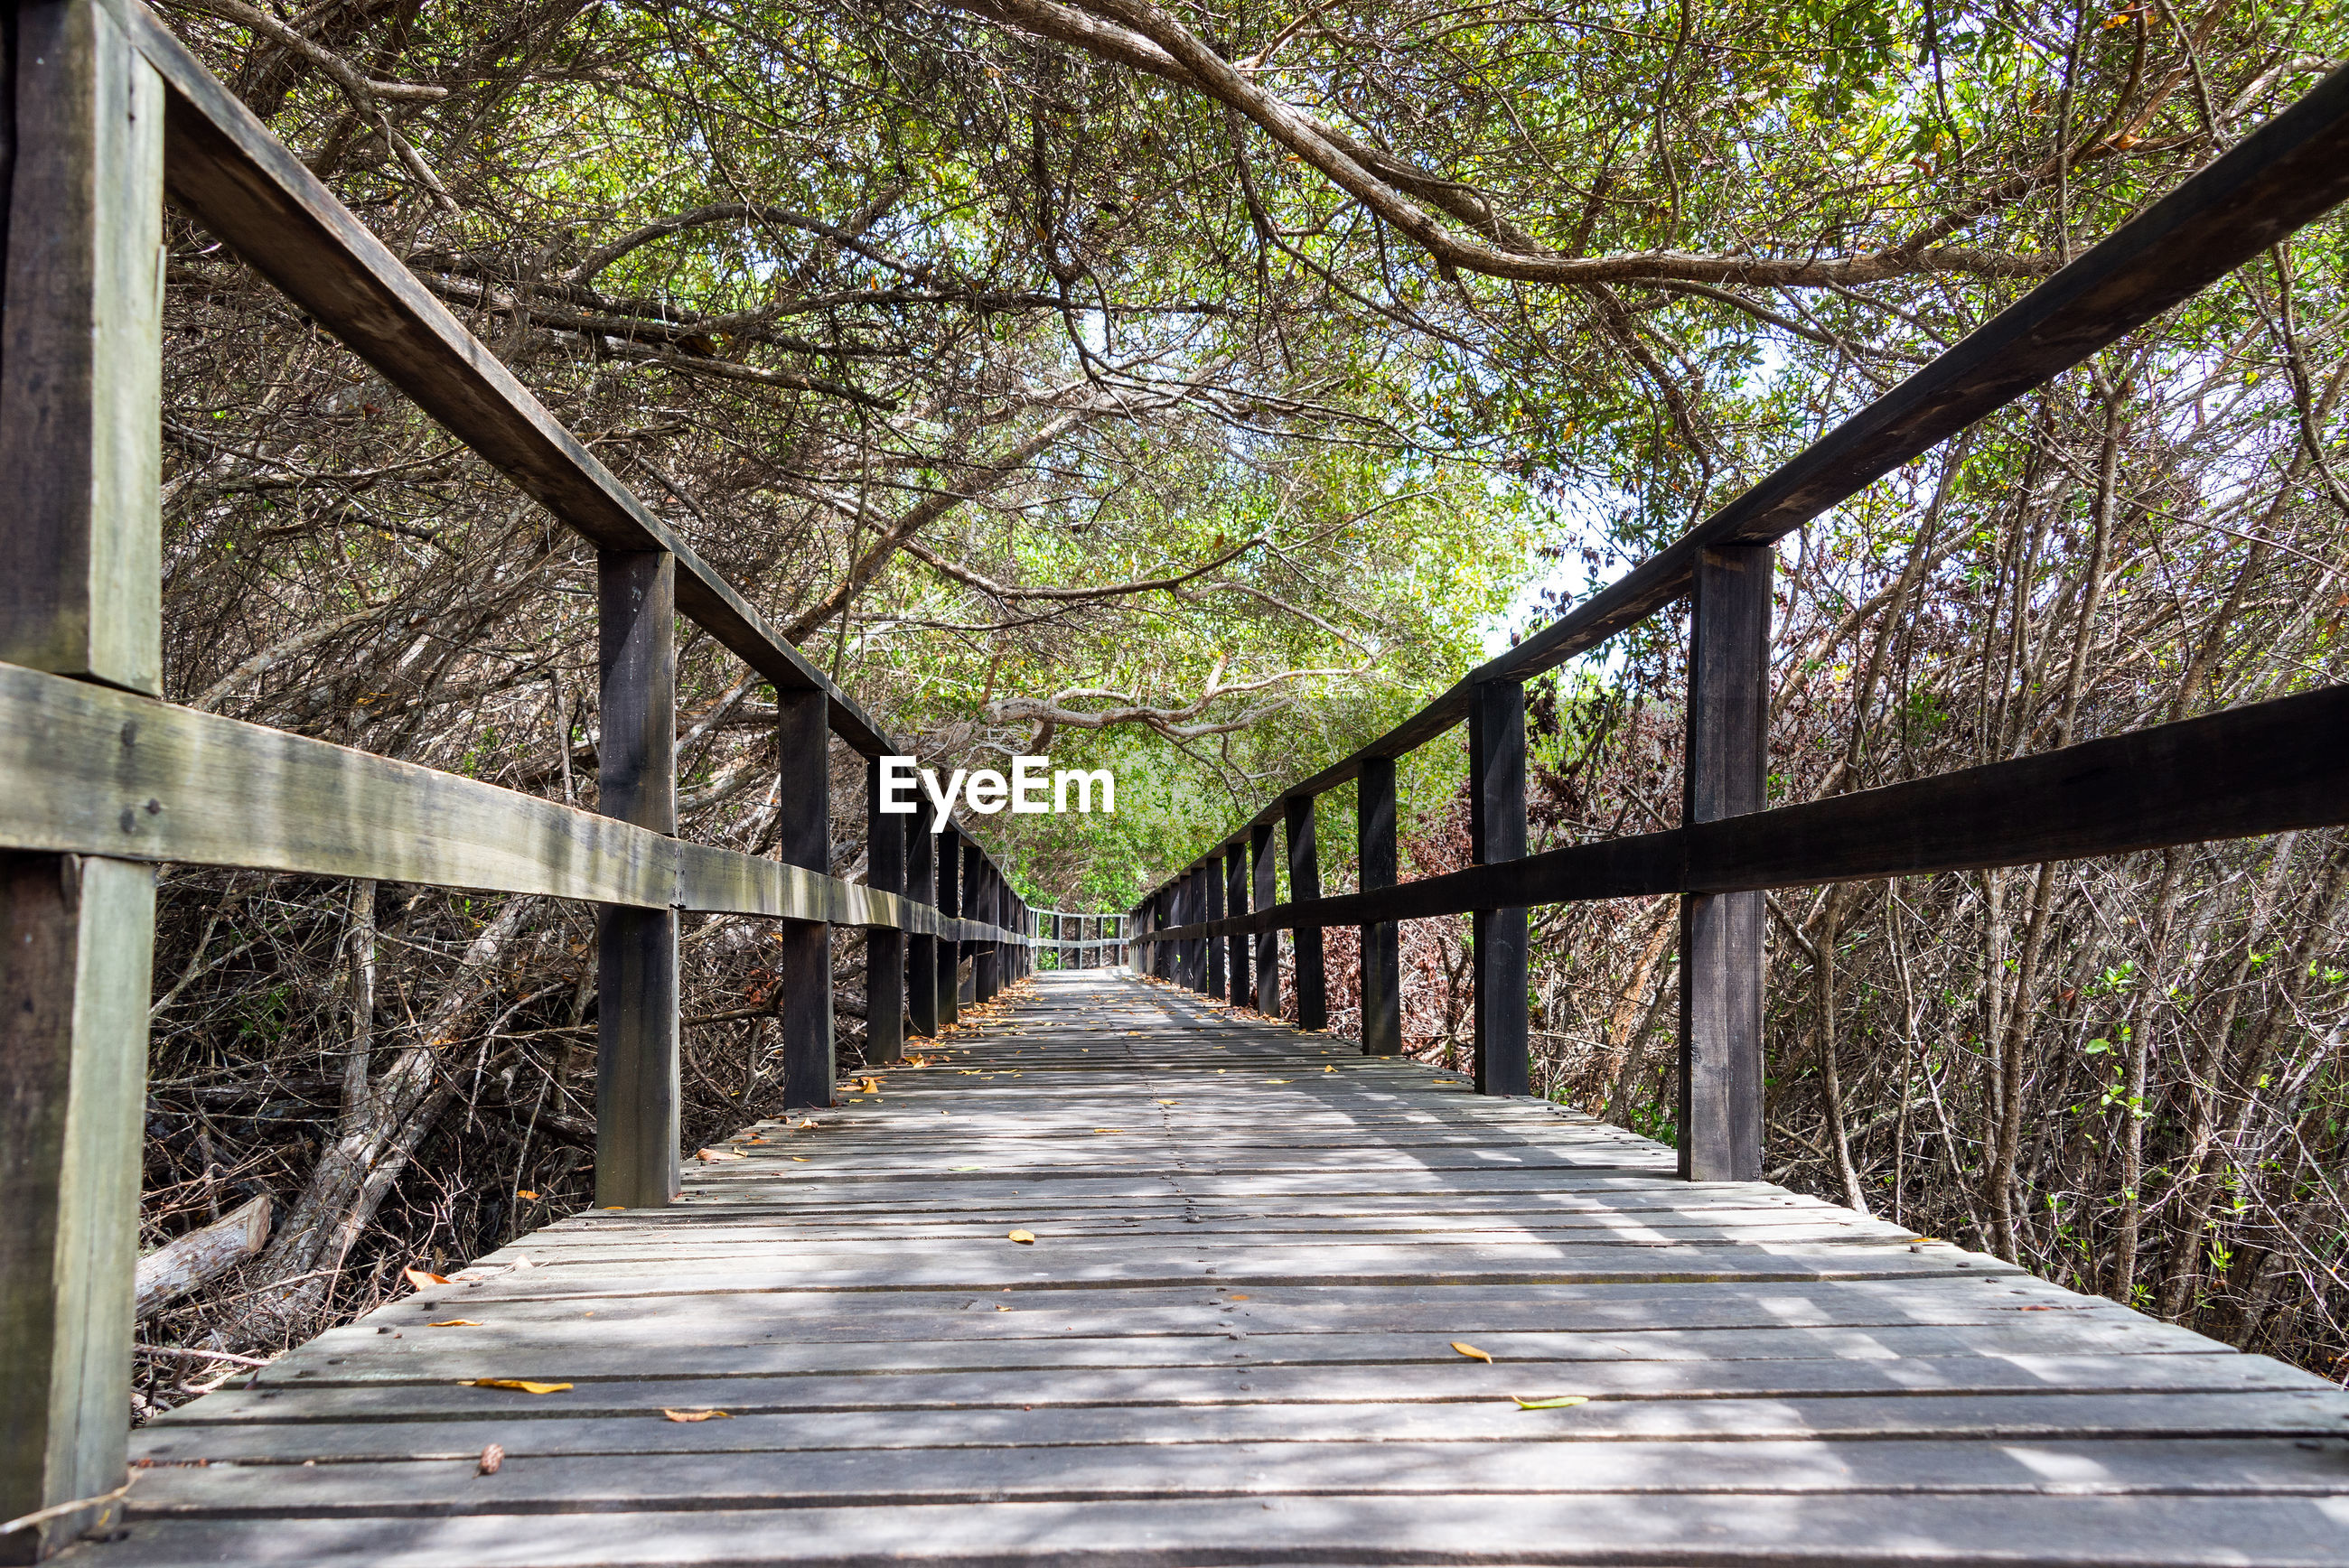 Empty boardwalk amidst trees at forest